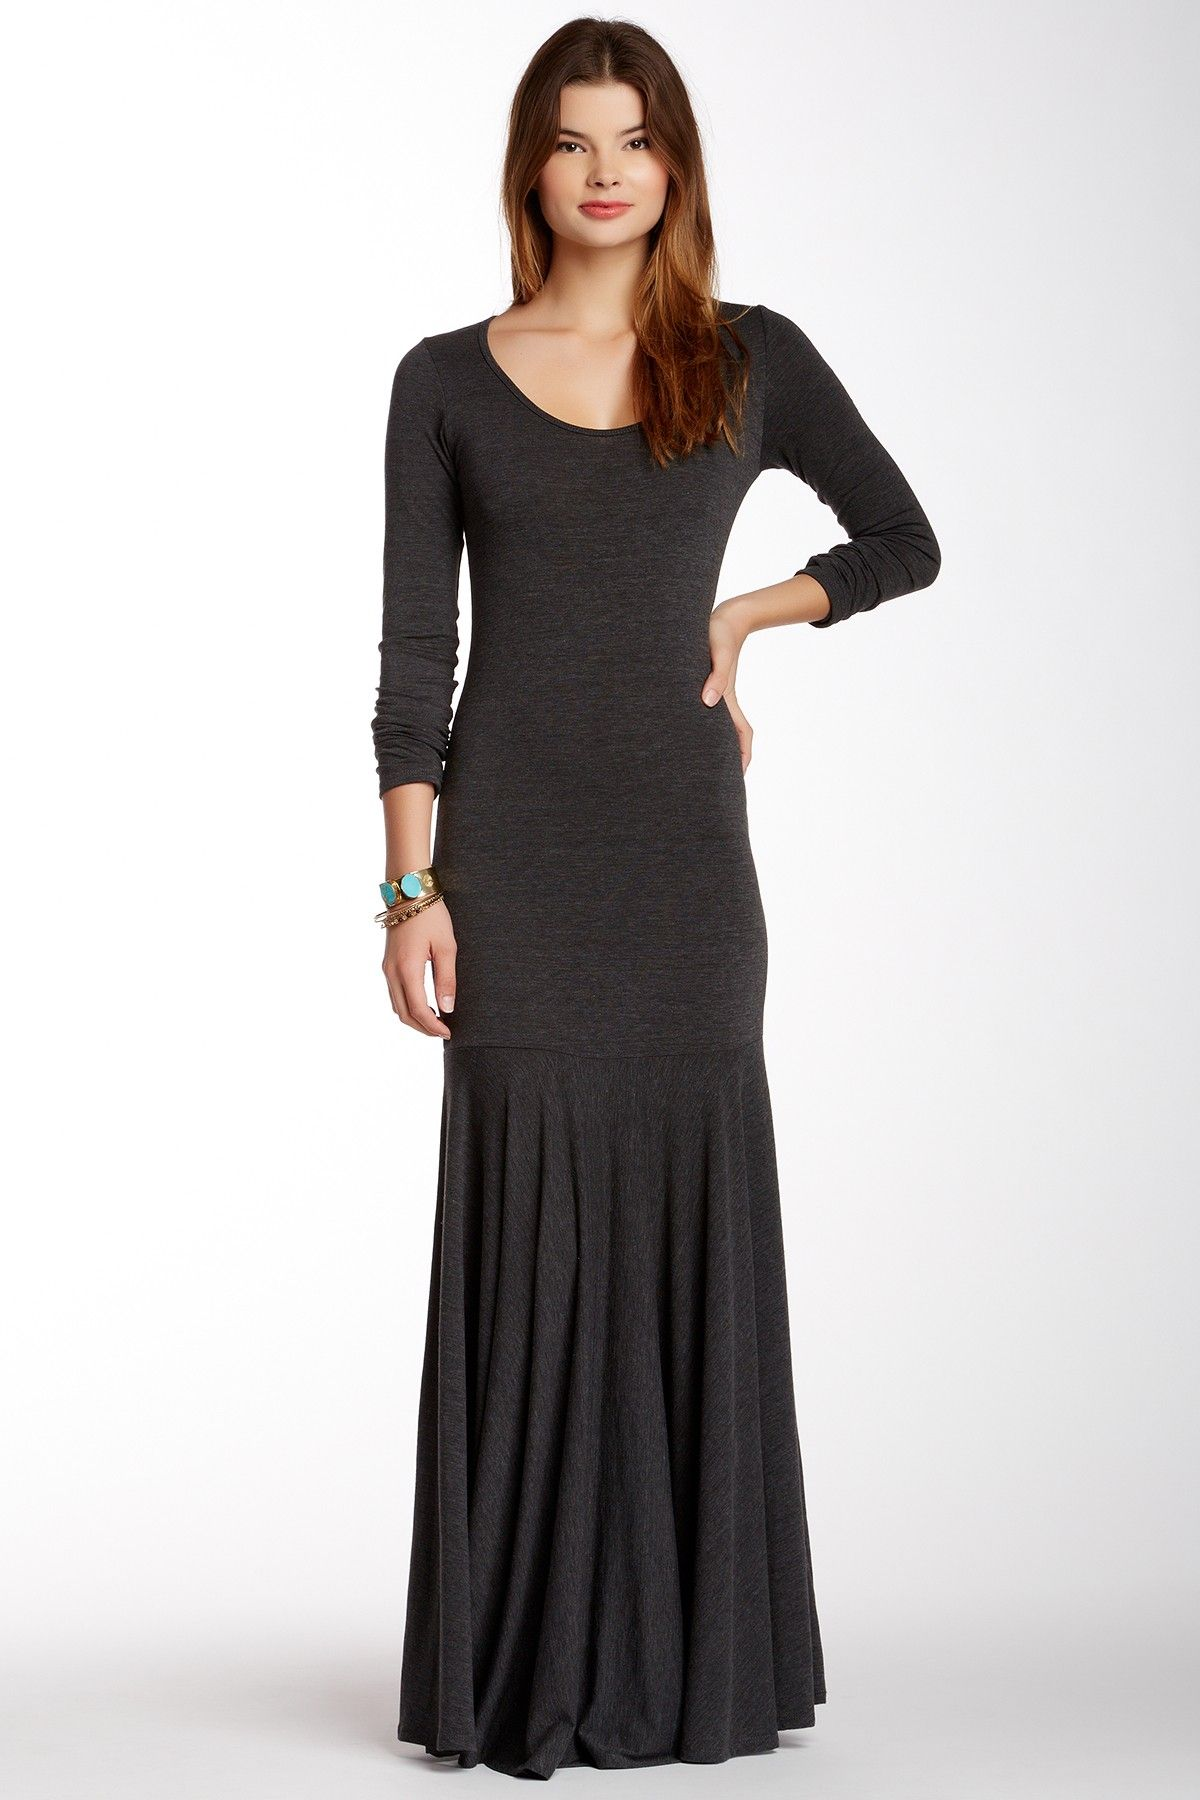 Great dress for cooler weather.